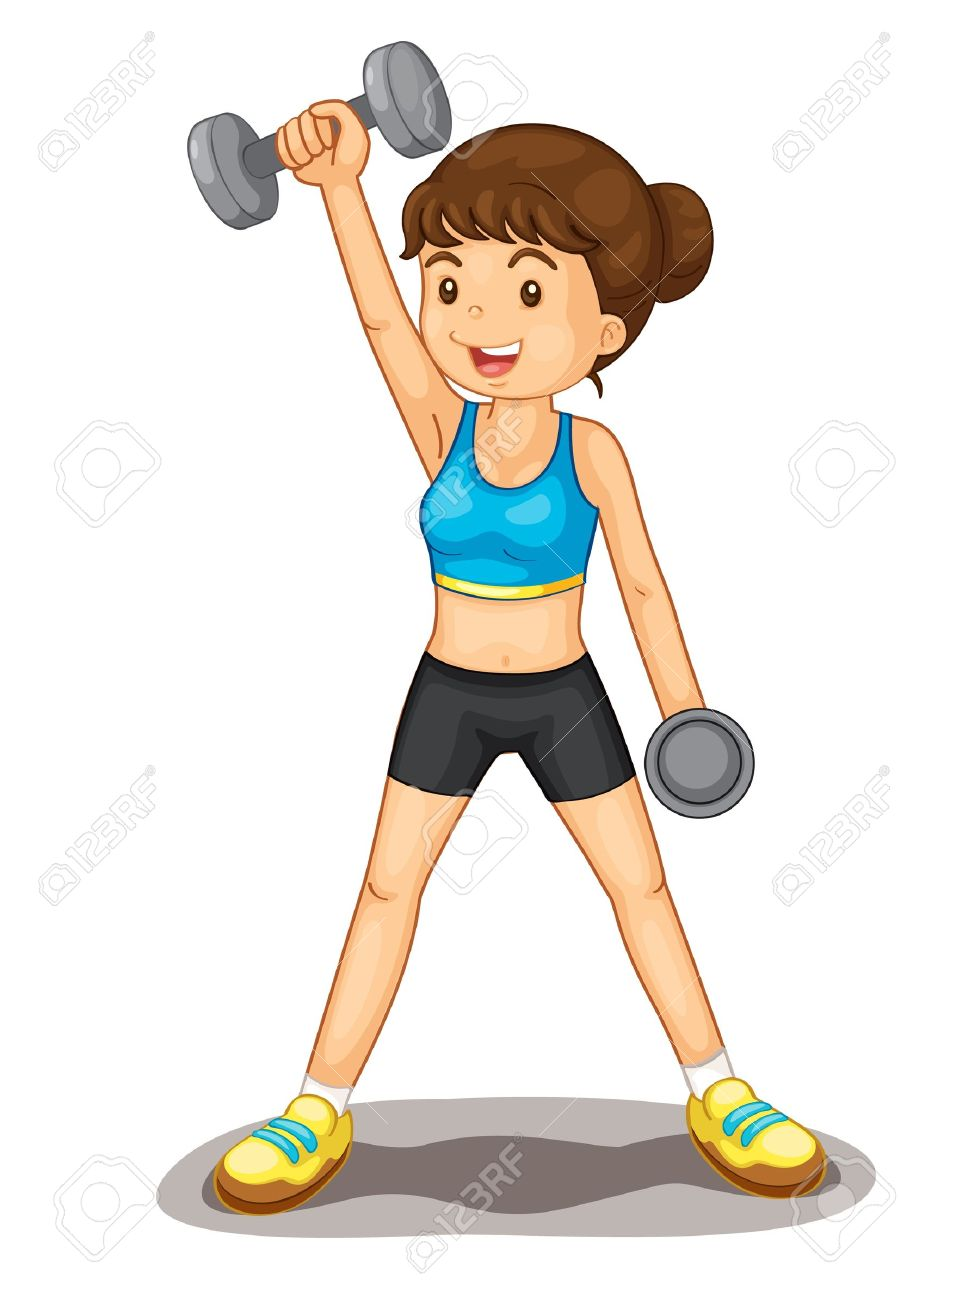 exercise clipart clipart panda free clipart images rh clipartpanda com clipart exercise equipment clipart exercise bike riding